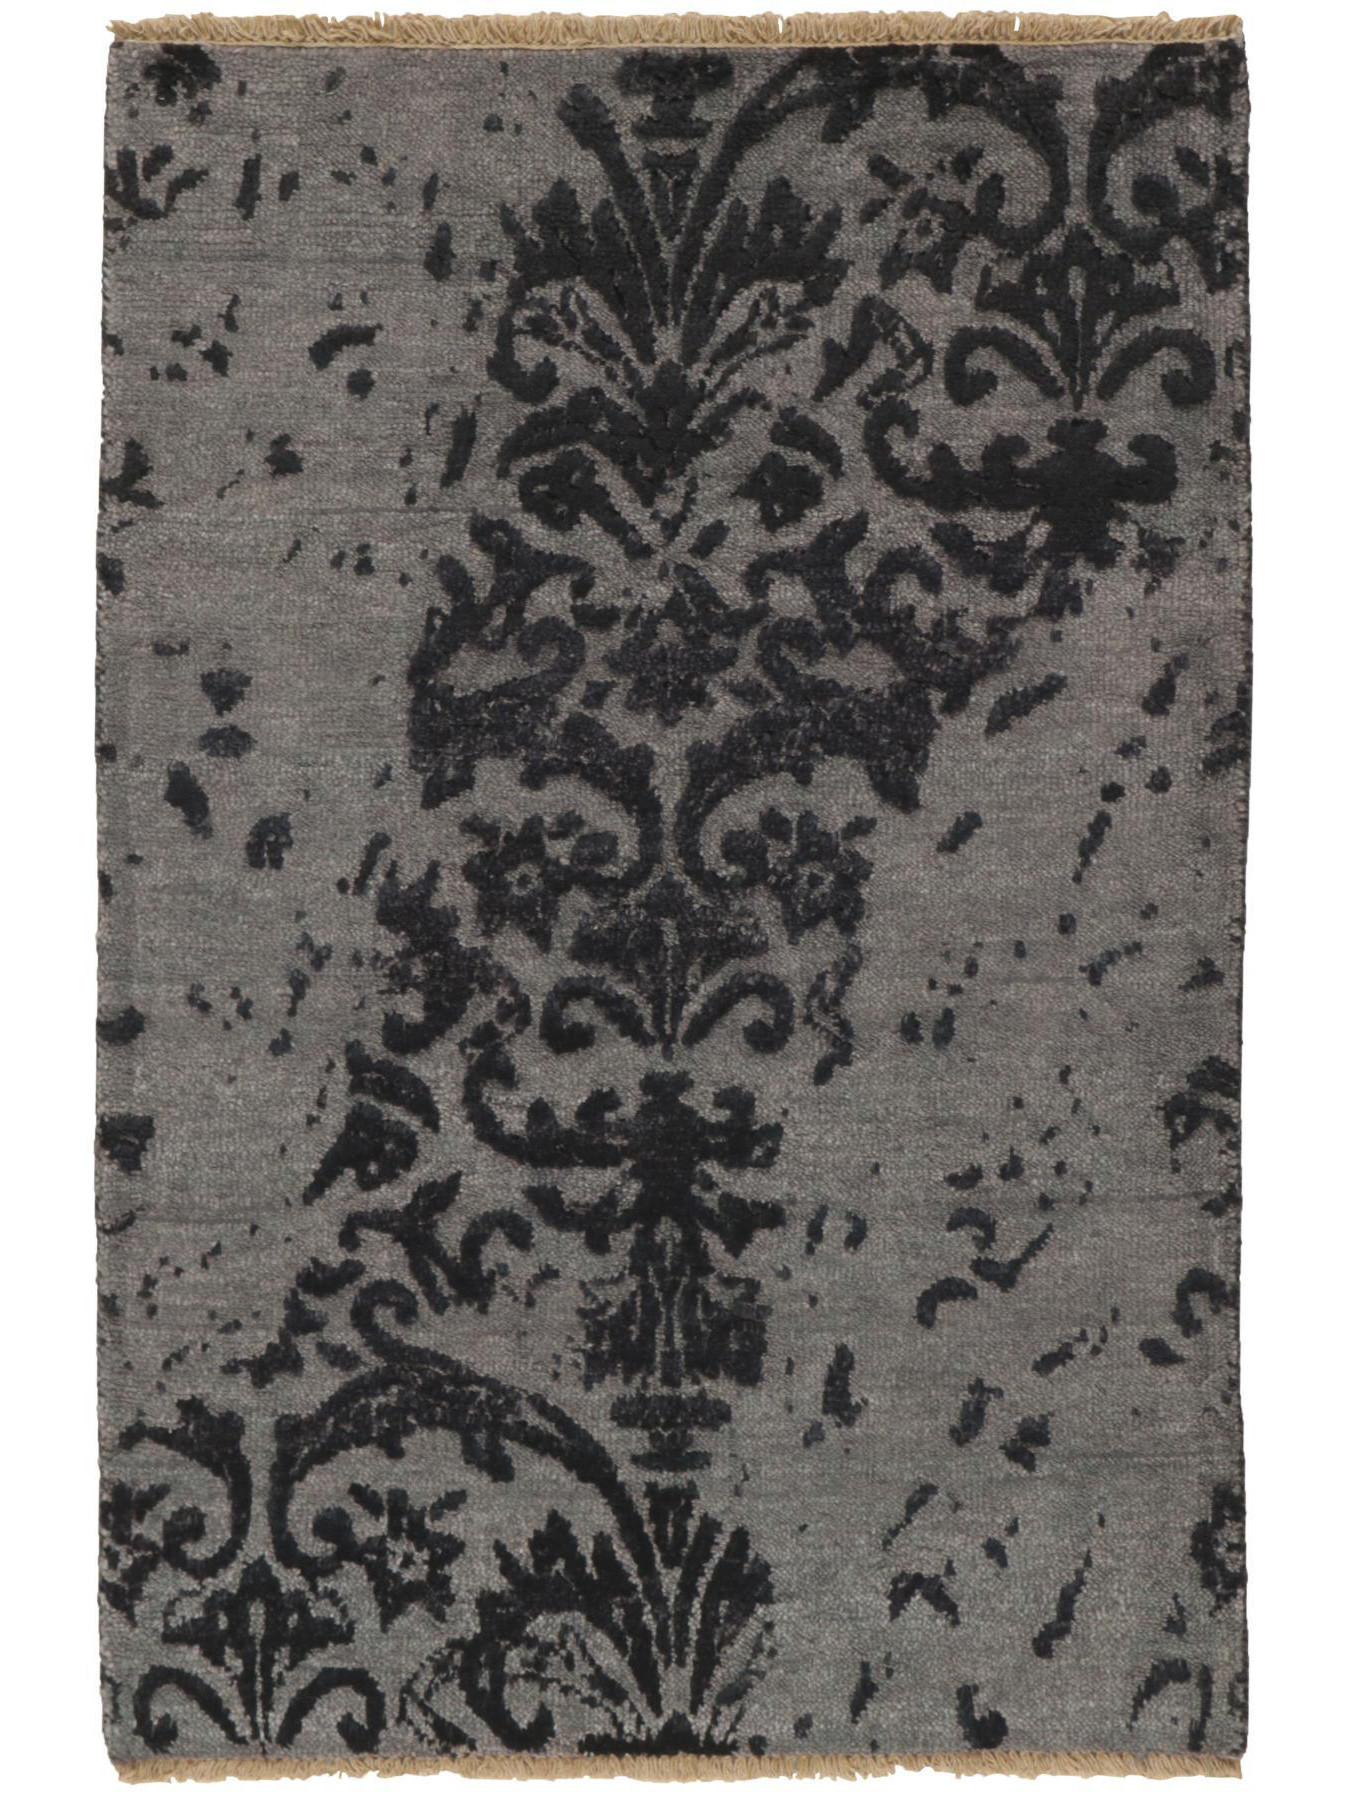 Luxury carpets - Damask-AL-2E B-22/HB-7